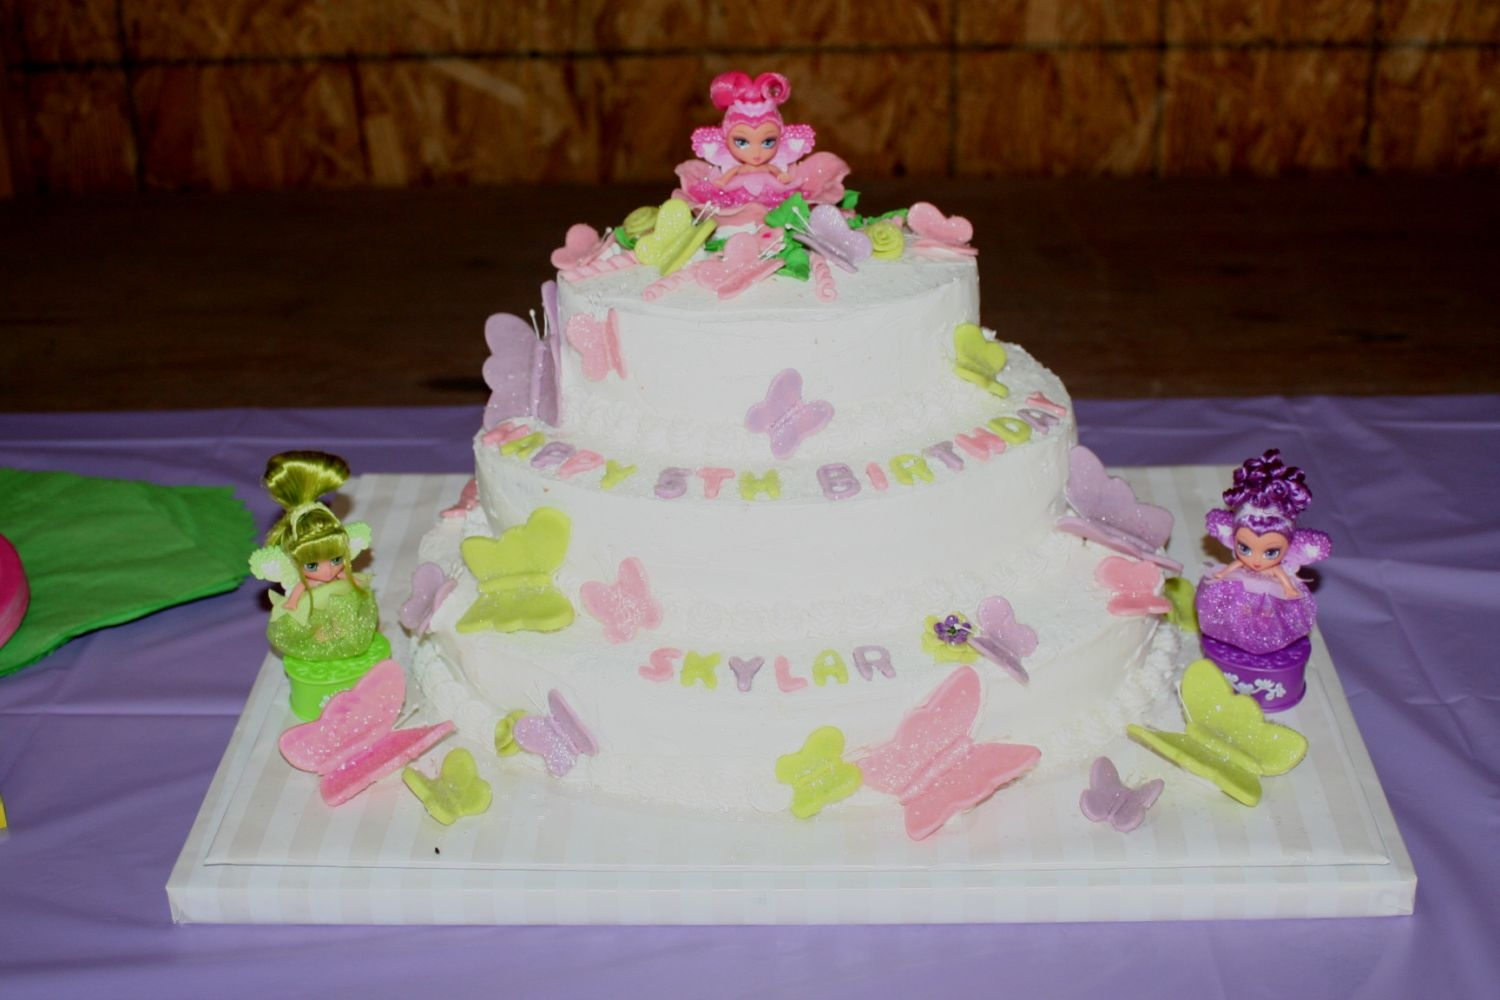 Wondrous Our Little Fairy Cake Granddaughter 5Th Birthday Cake Funny Birthday Cards Online Alyptdamsfinfo